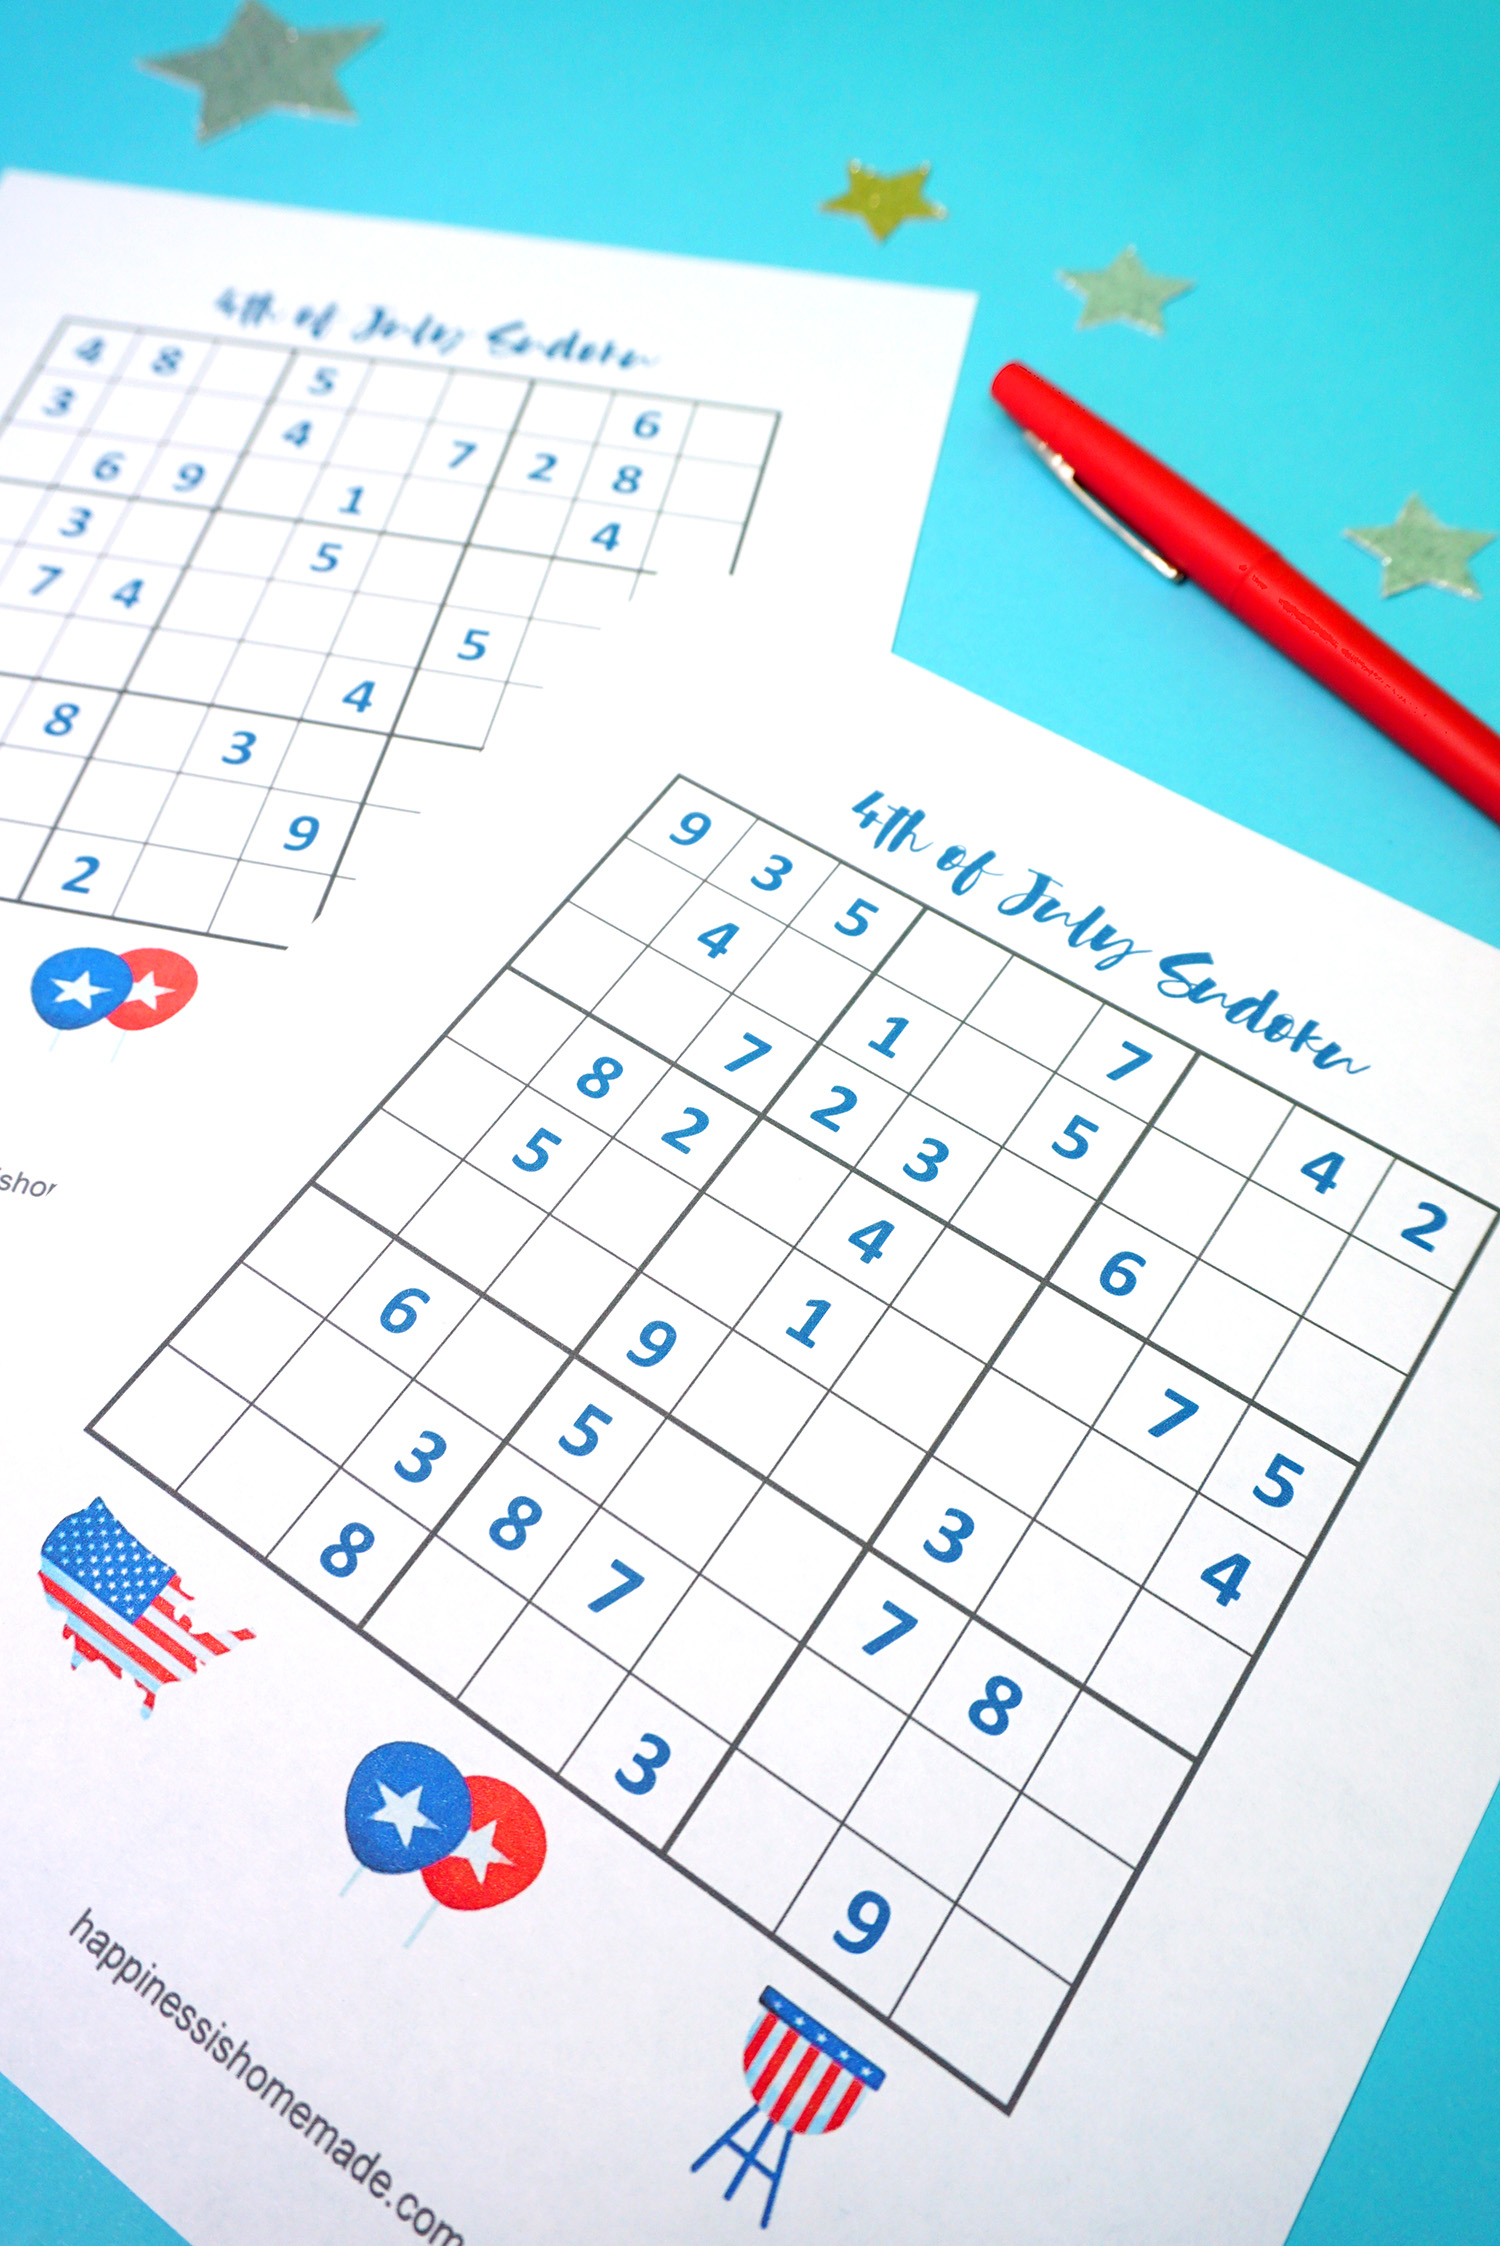 4Th Of July Printable Sudoku Puzzles + Logic Puzzle - Happiness Is - Free Printable Sudoku Puzzles